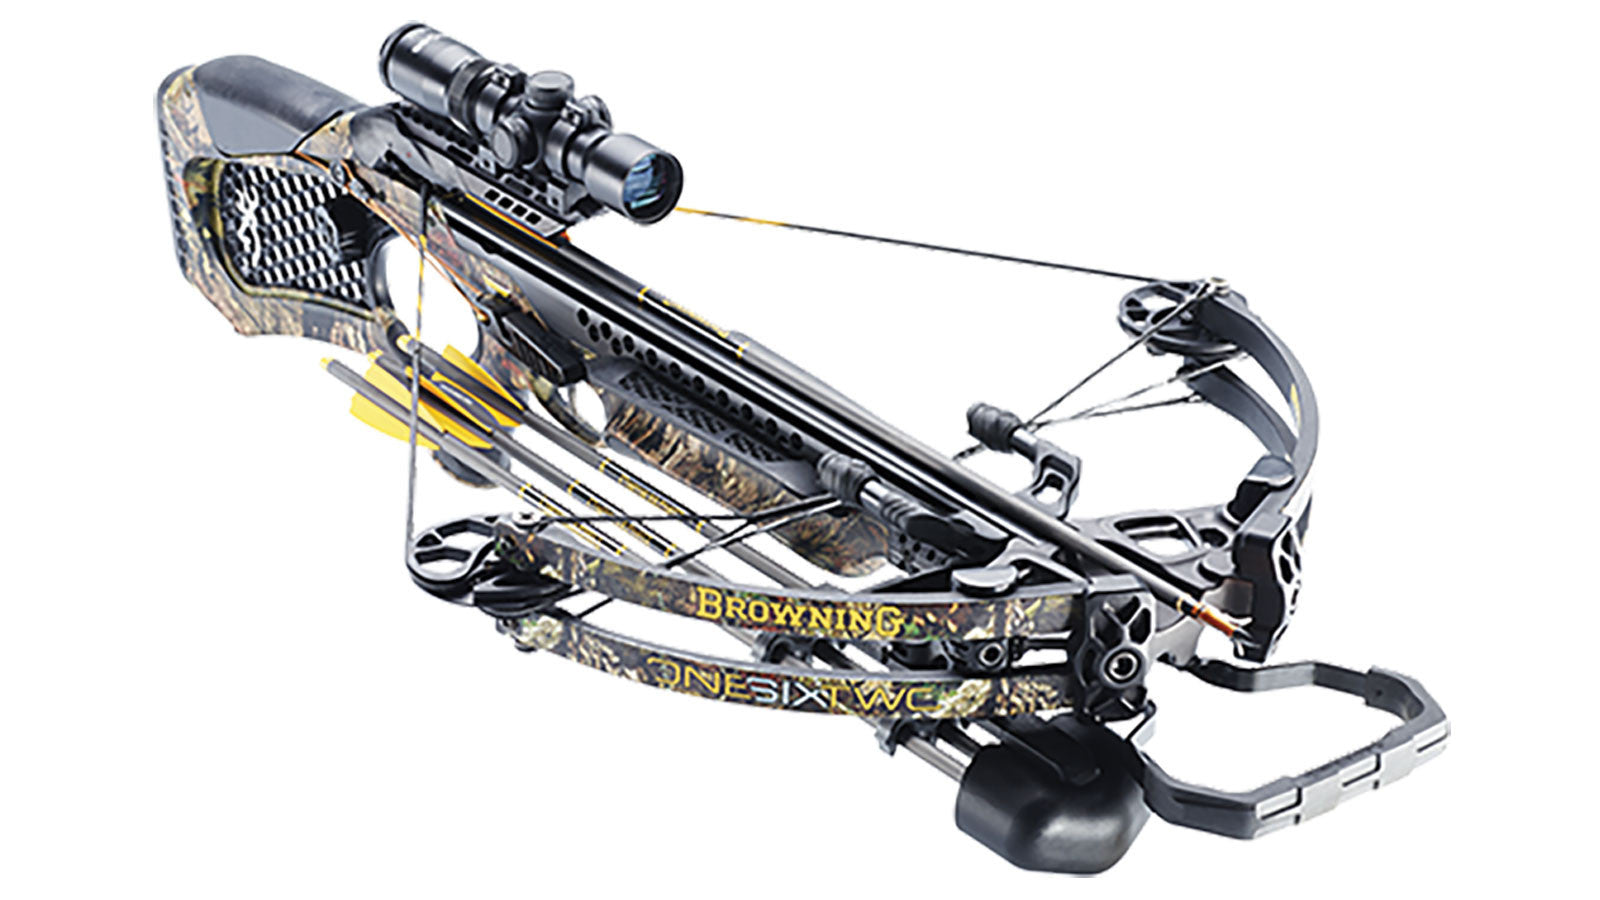 BROWNING CROSSBOW ZERO7-162 w/ 1.5X5 SCOPE